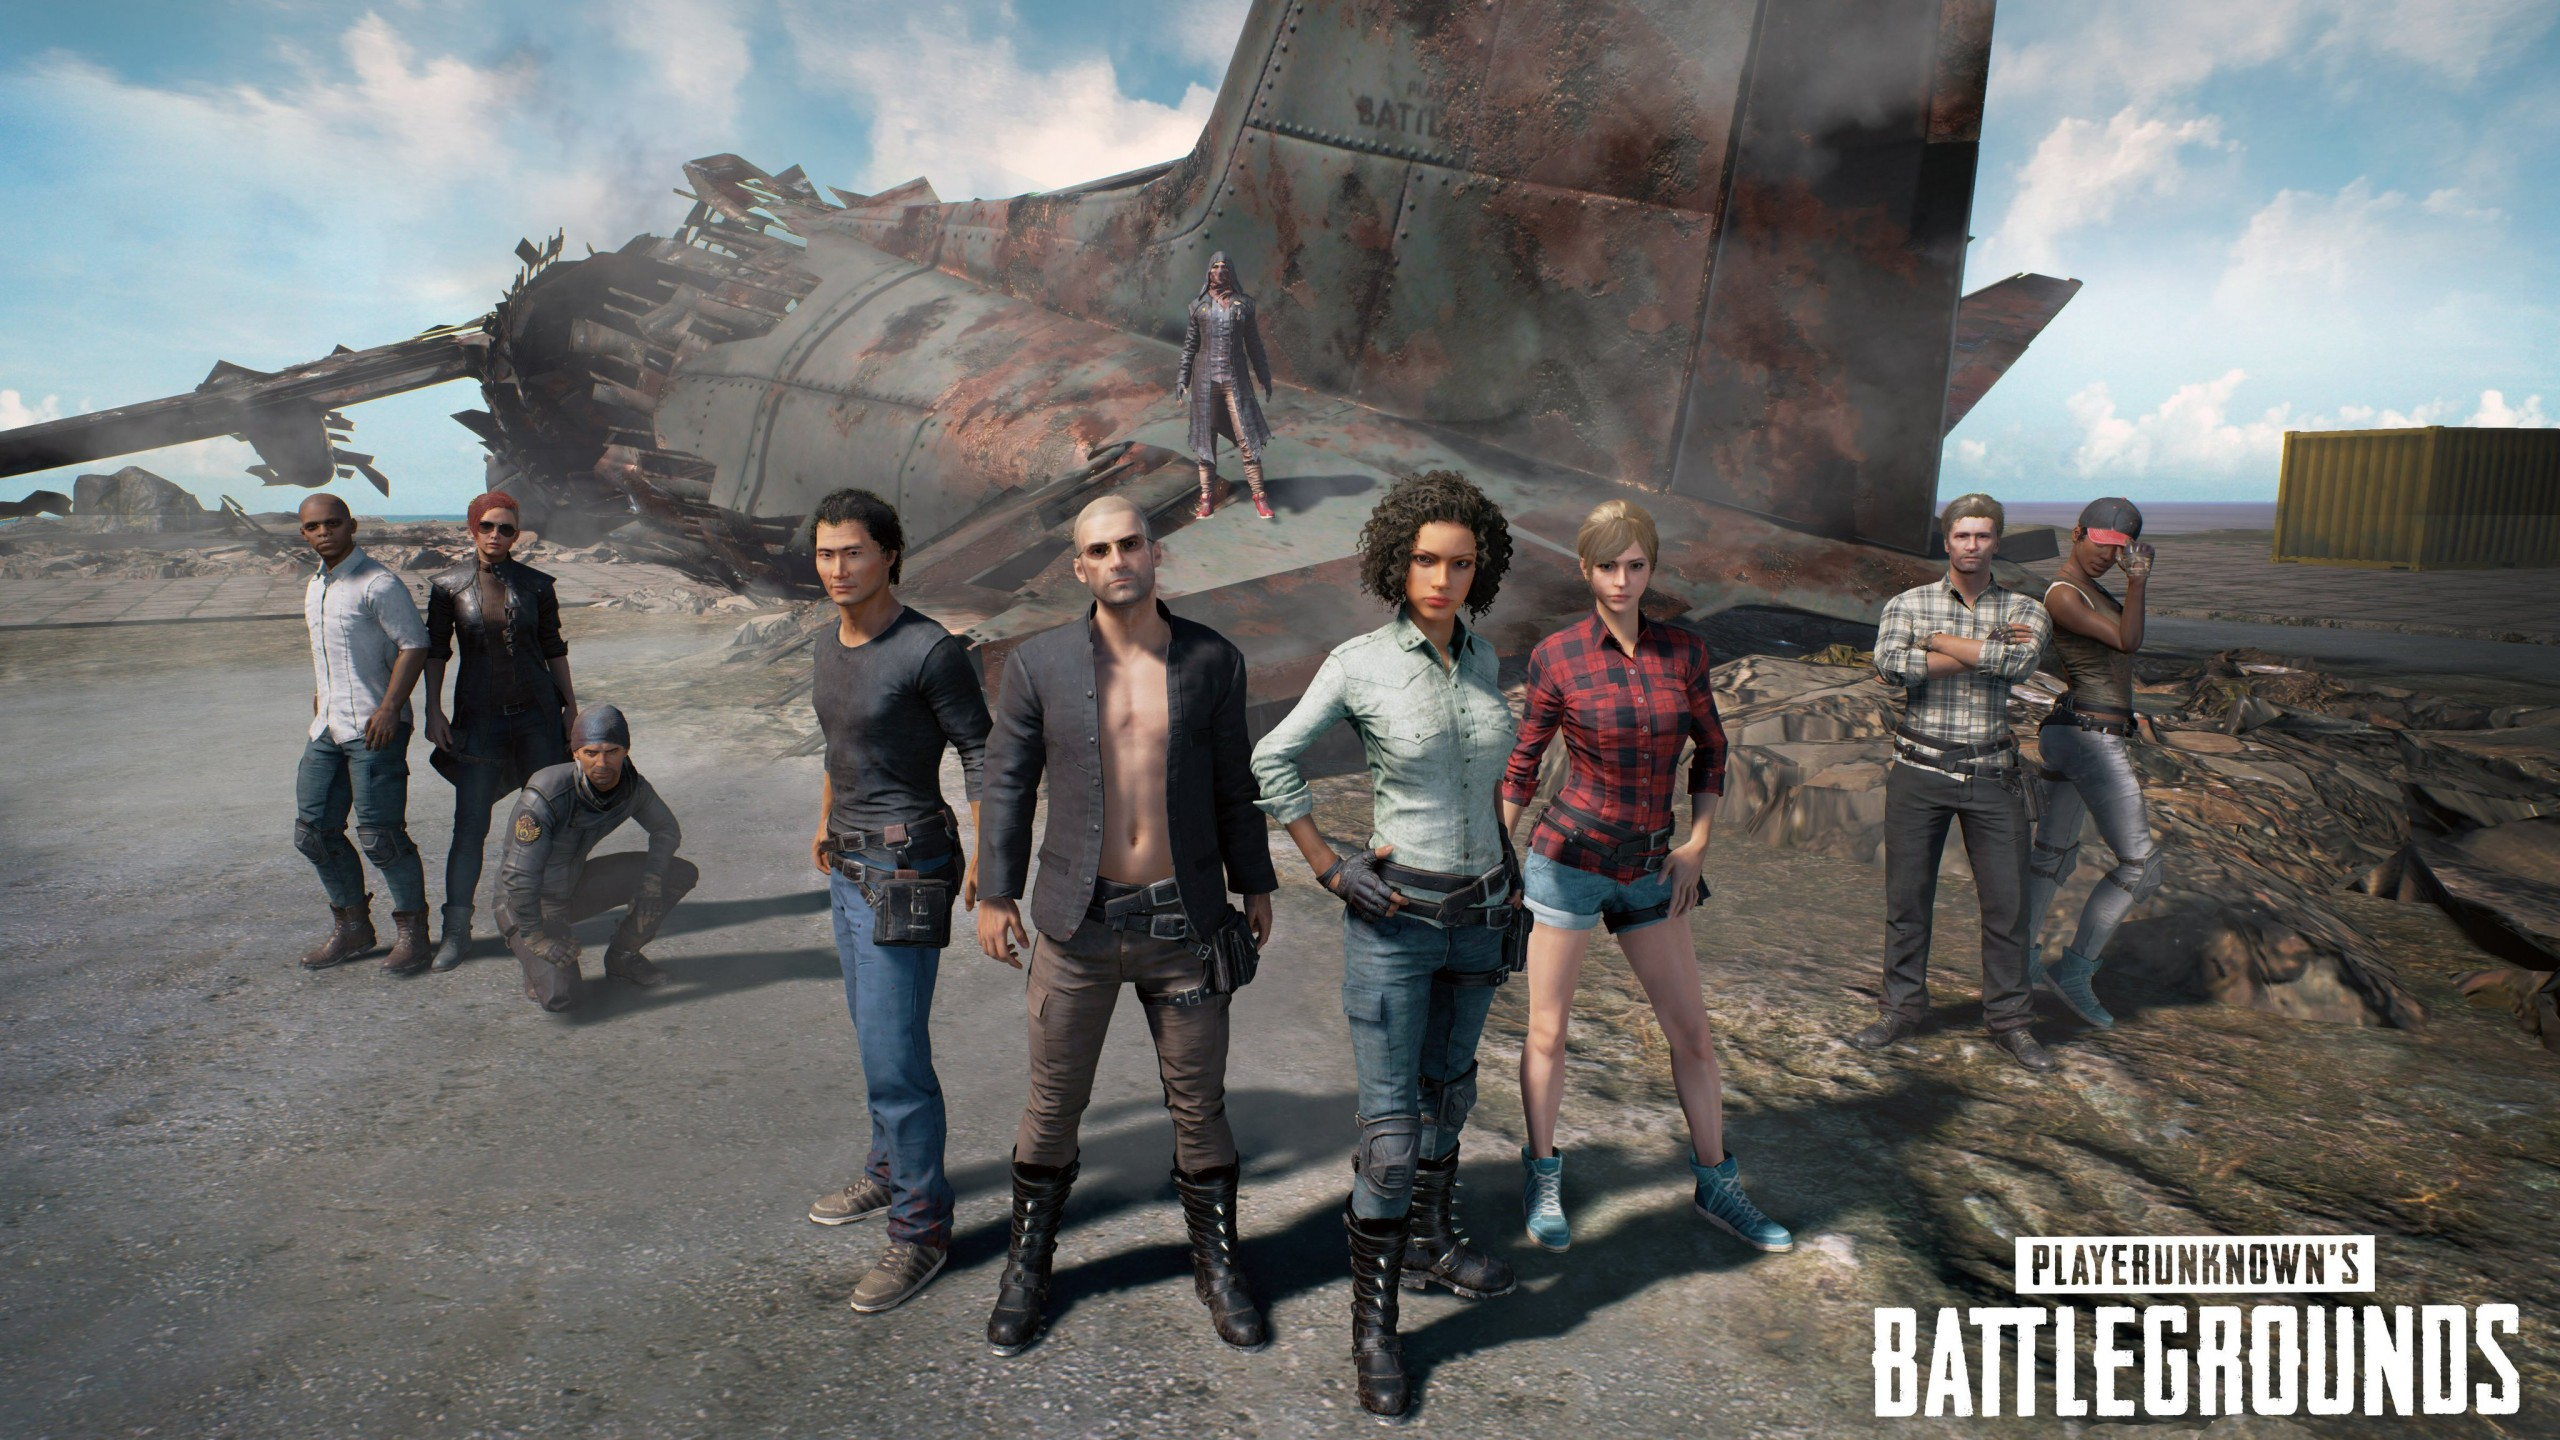 Top 13 Pubg Wallpapers In Full Hd For Pc And Phone: Wallpaper Playerunknown's Battlegrounds, E3 2017